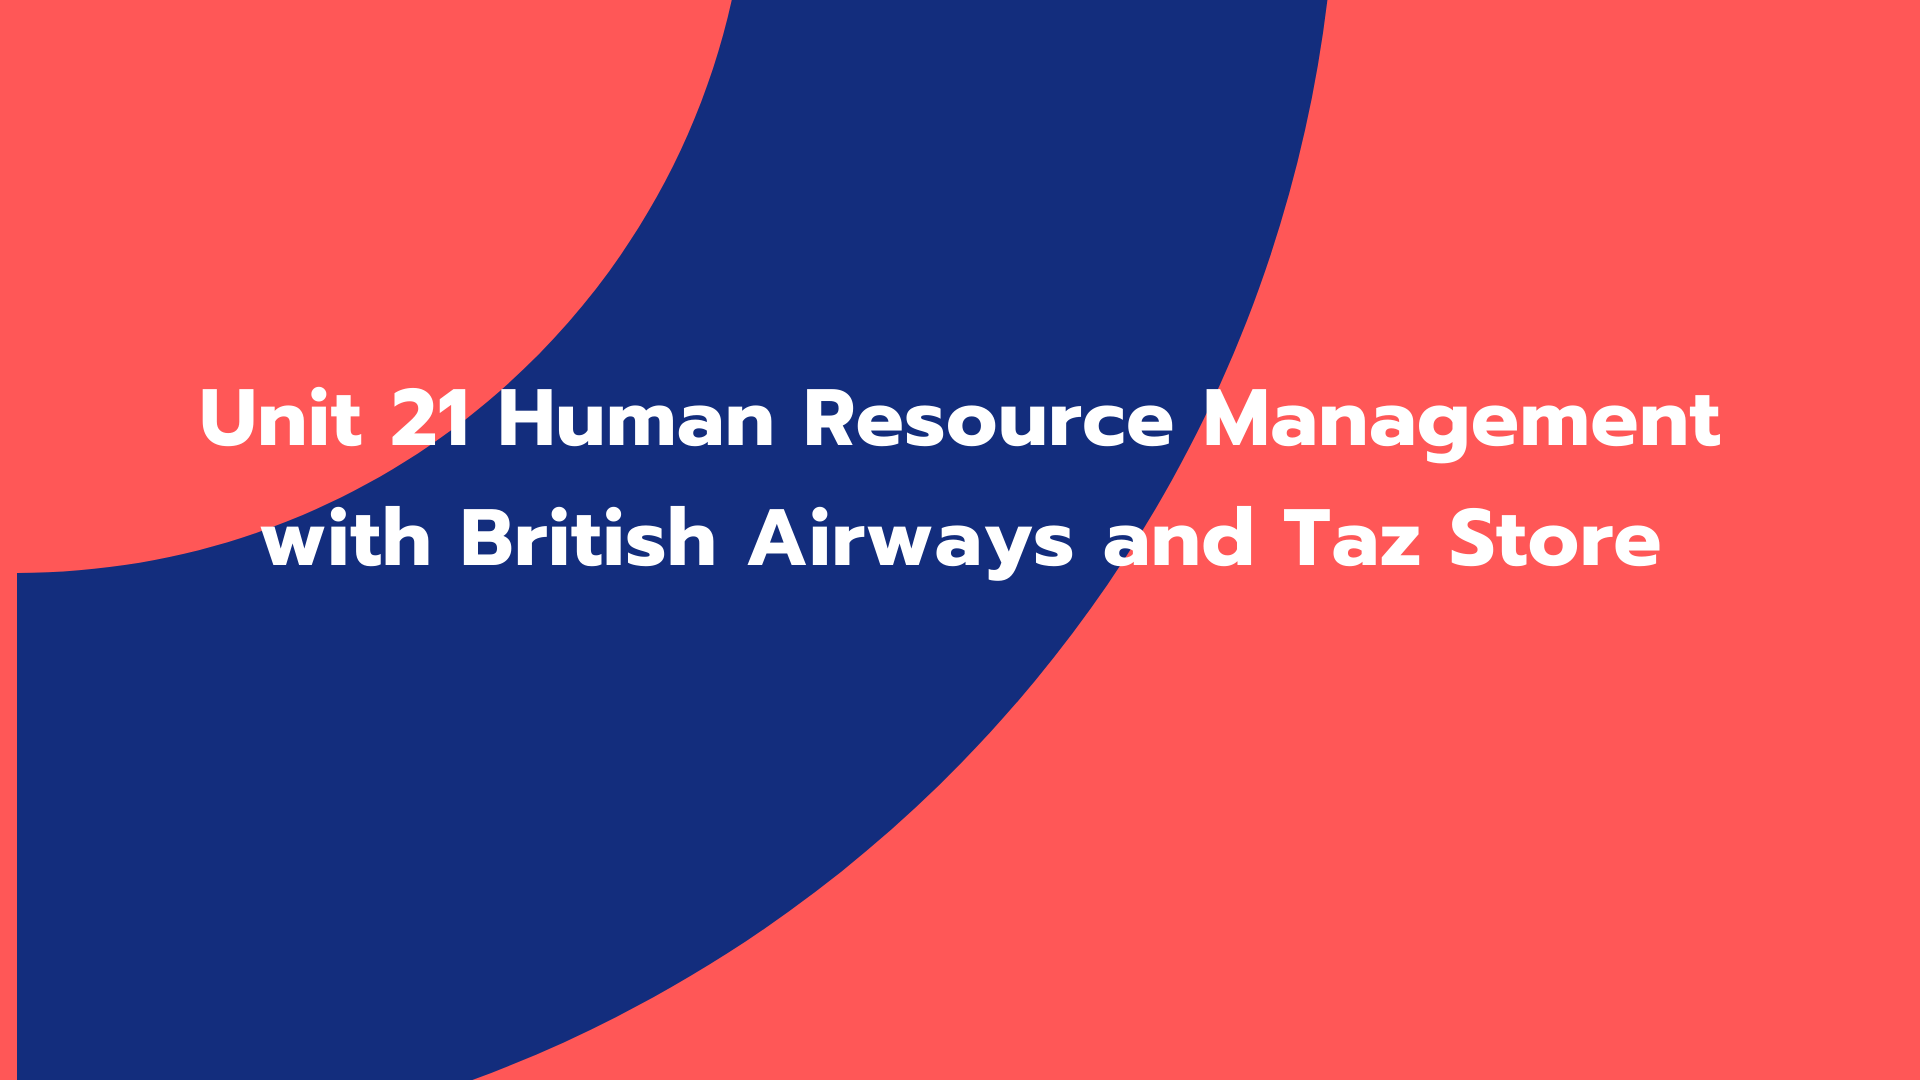 Unit 21 Human Resource Management with British Airways and Taz Store